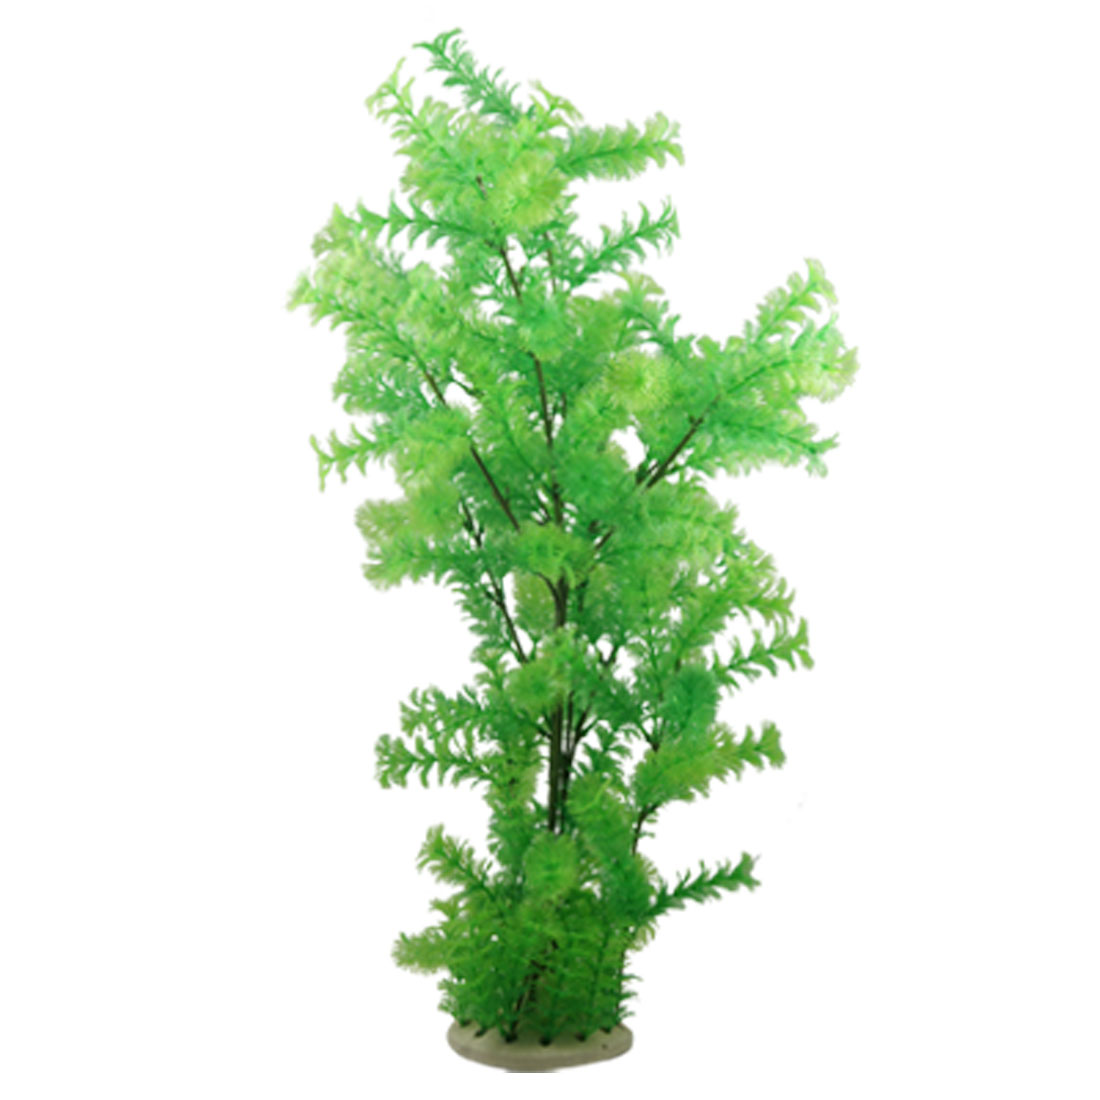 Round Base w Green Plastic Plants Ornament for Fish Tank